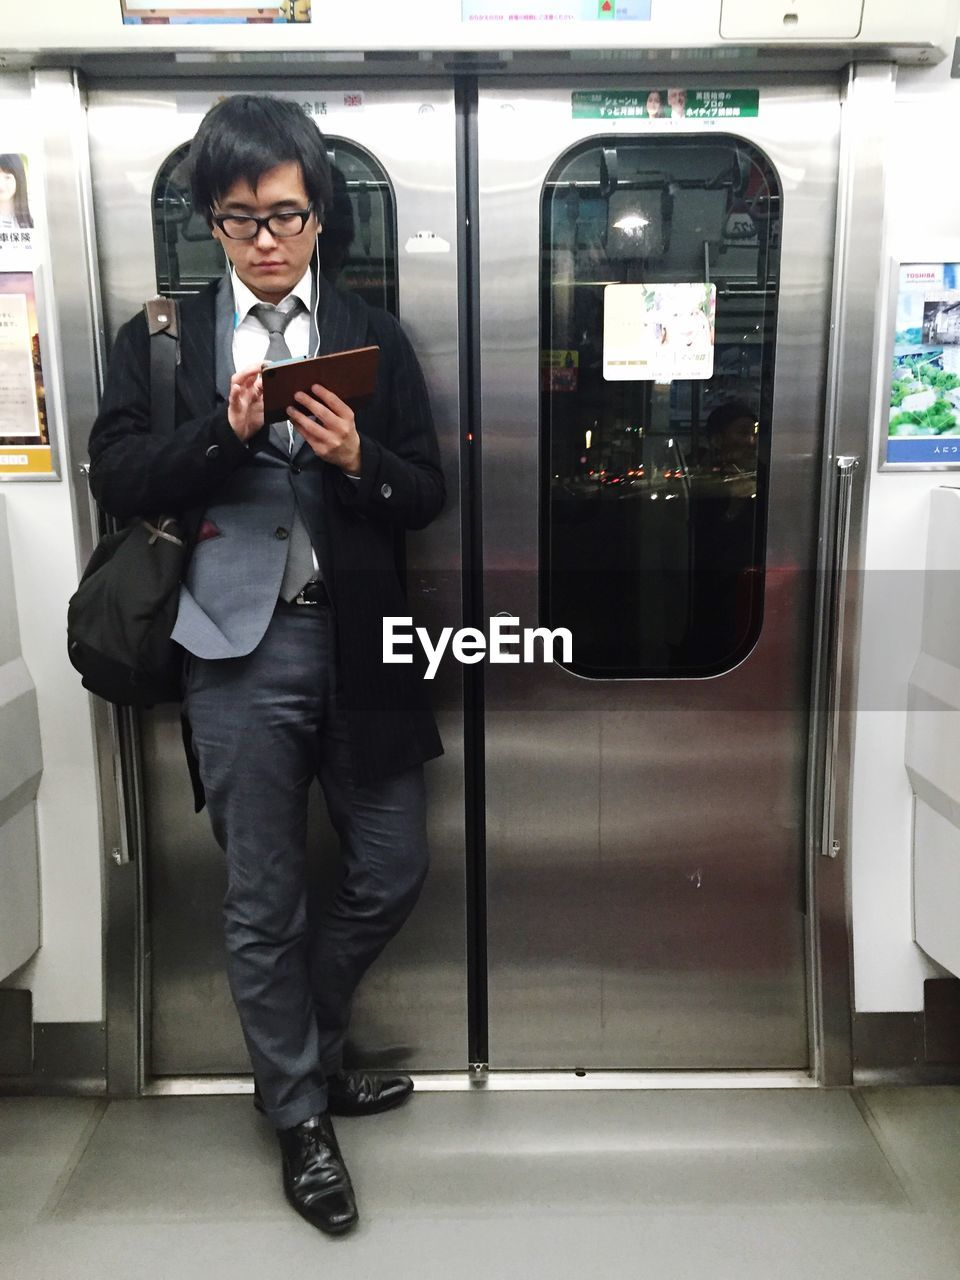 wireless technology, technology, real people, communication, portable information device, indoors, smart phone, mobile phone, standing, transportation, front view, connection, one person, holding, full length, lifestyles, young adult, day, people